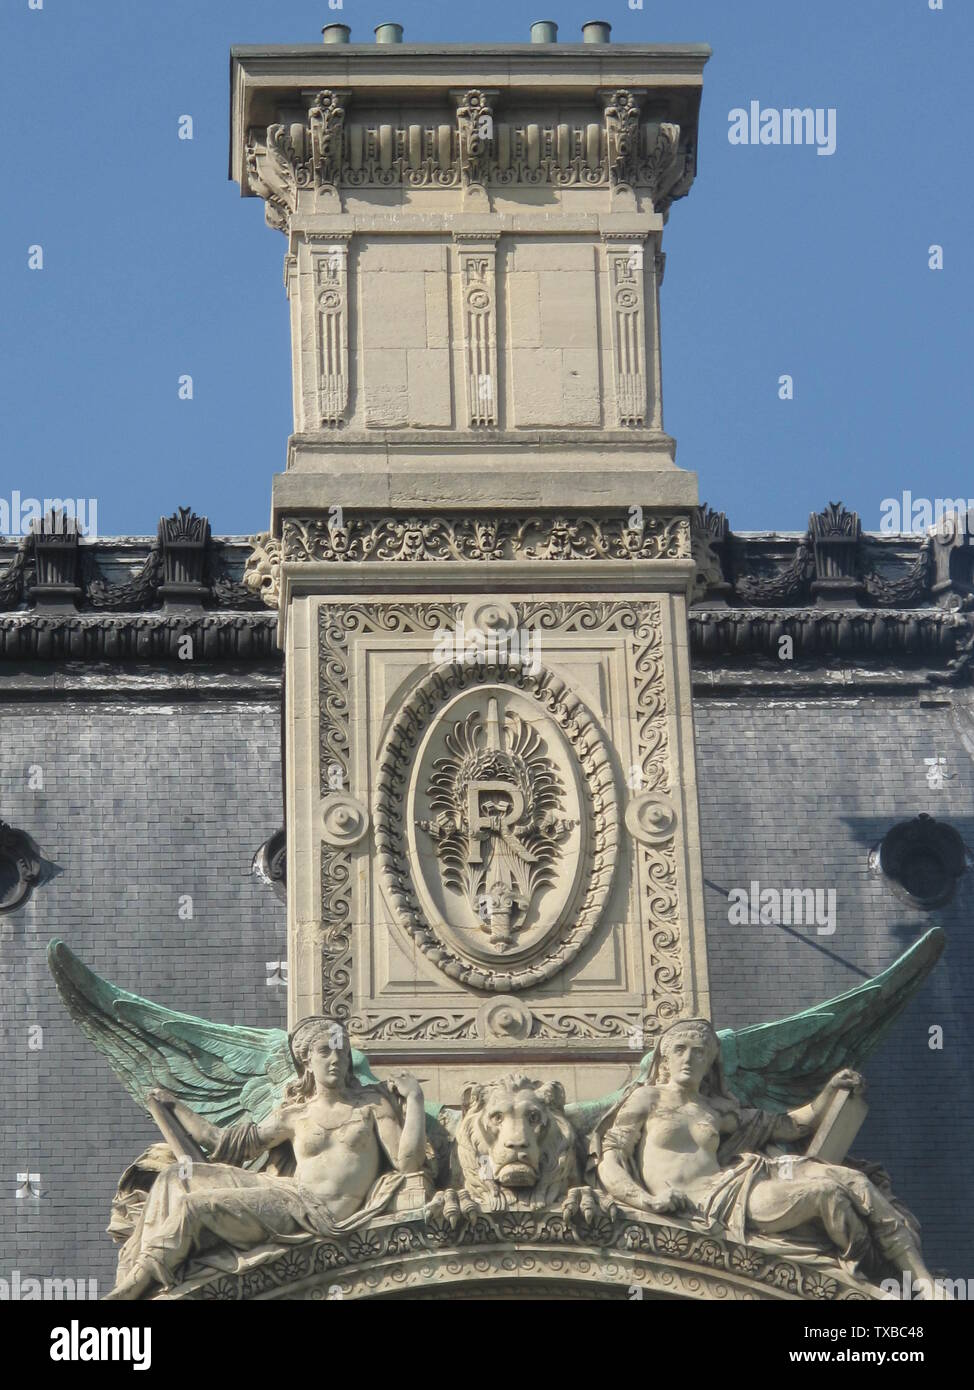 'English: Chimney of the pavillon de Marsan, south side, Paris 1st arrond. The letter R symbolizes the French Republic, as the french kings signed their creations by their own monogram. Français : Cheminée du pavillon de Marsan du coté Sud, Paris 1er arr. Le R symbolise la République, de la même façon que les rois signaient leurs constructions par leur monogramme.; 6 July 2010; Own work; Tangopaso; ' - Stock Image